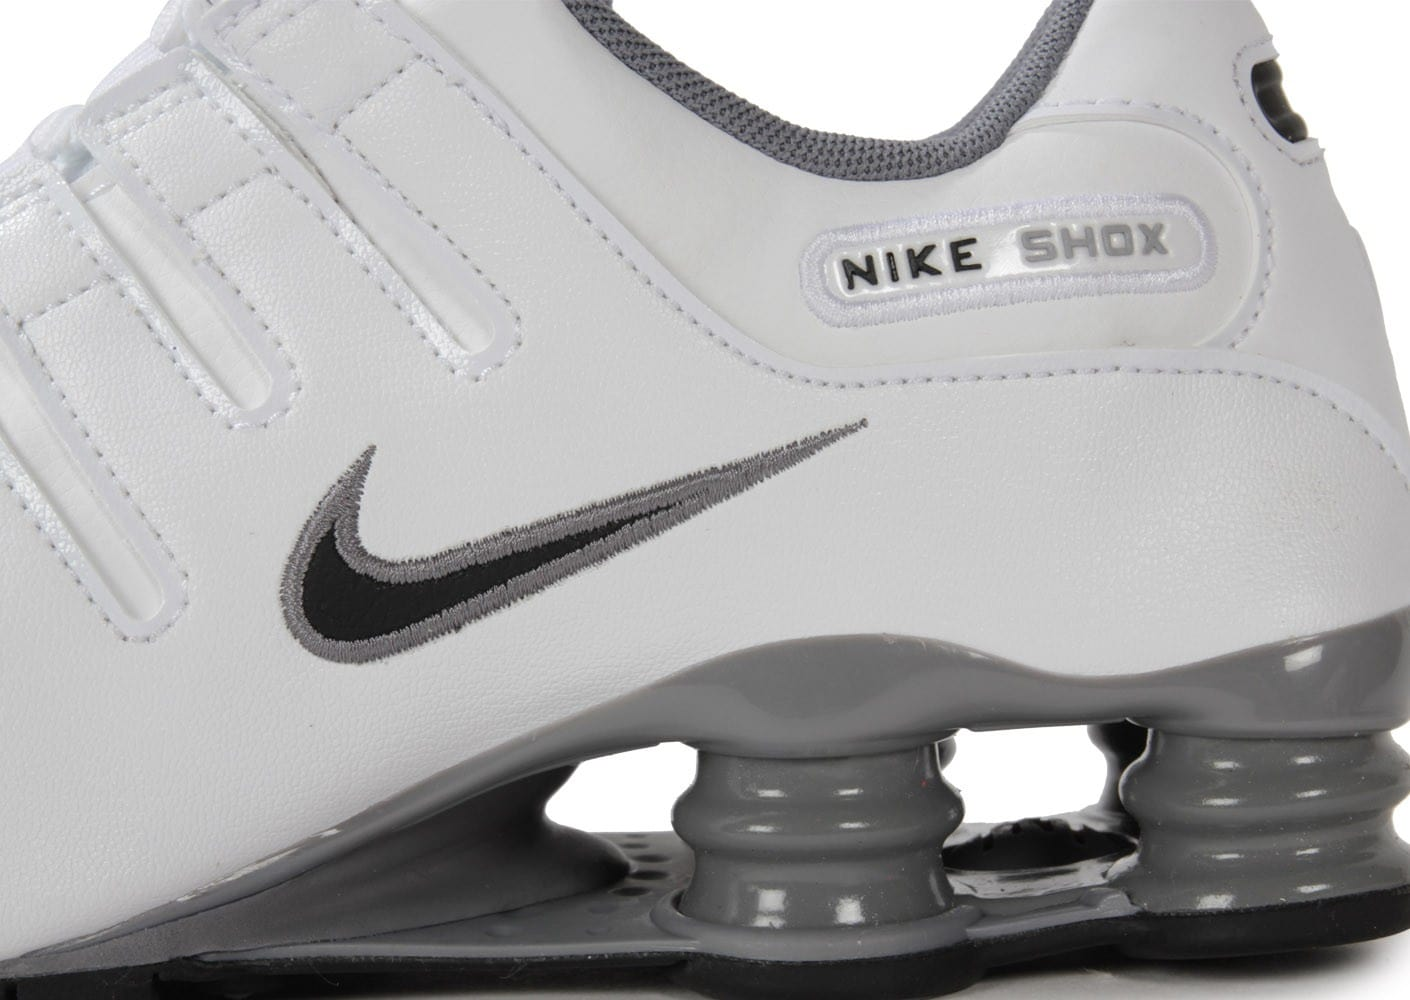 newest ede94 f754d ... Chaussures Nike Shox Nz Blanche vue dessus